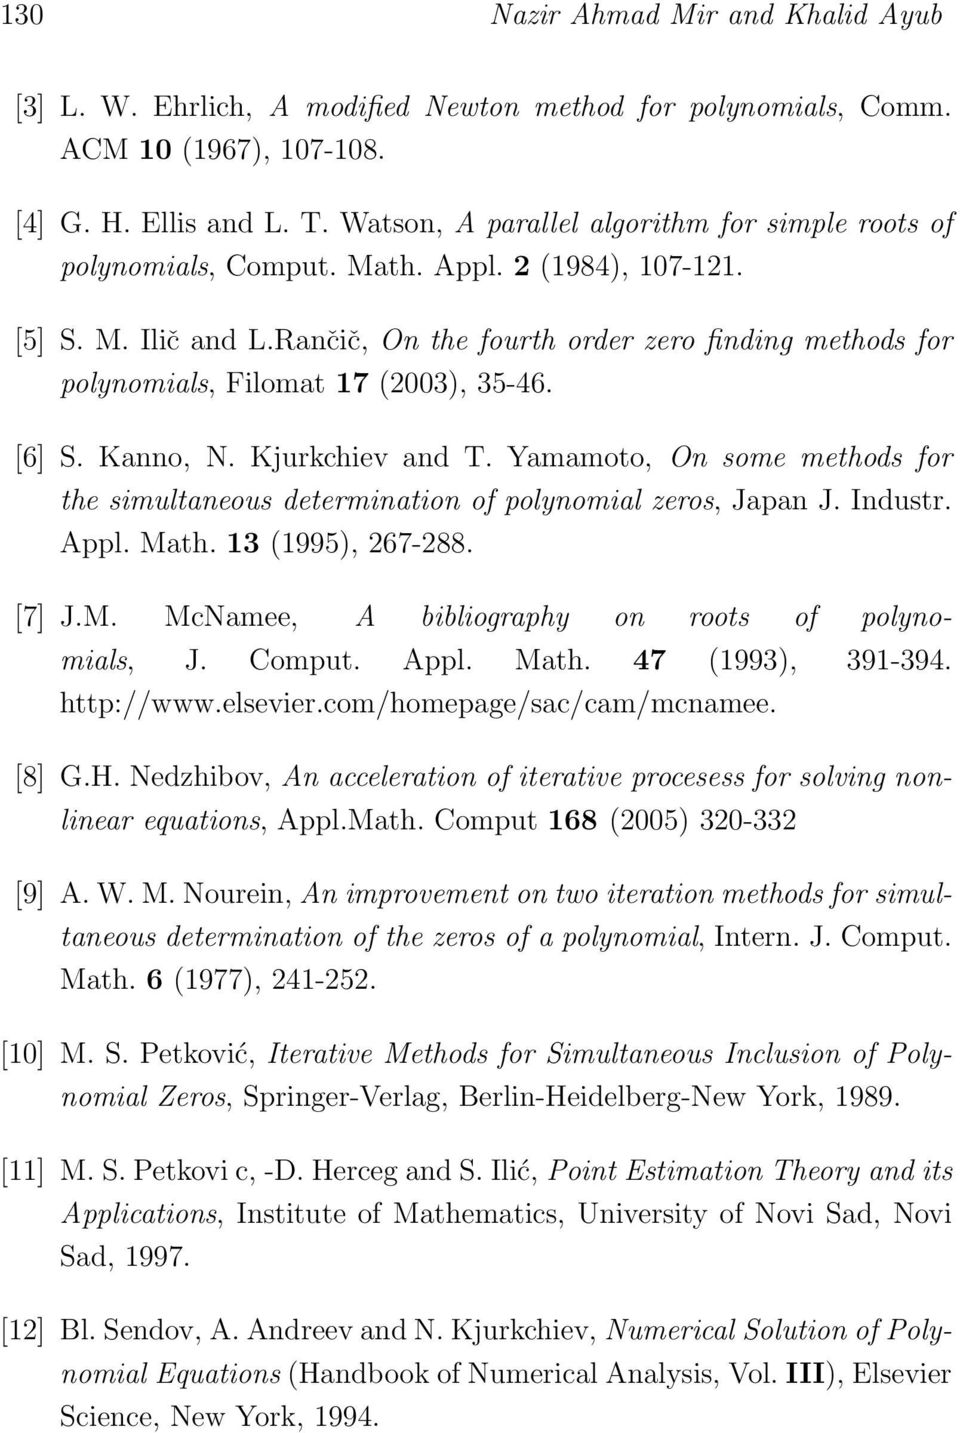 [6] S. Kanno, N. Kjurkchev and T. Yamamoto, On some methods for the smultaneous determnaton of polynomal zeros, Japan J. Industr. Appl. Math. 3 (995), 267-288. [7] J.M. McNamee, A bblography on roots of polynomals, J.